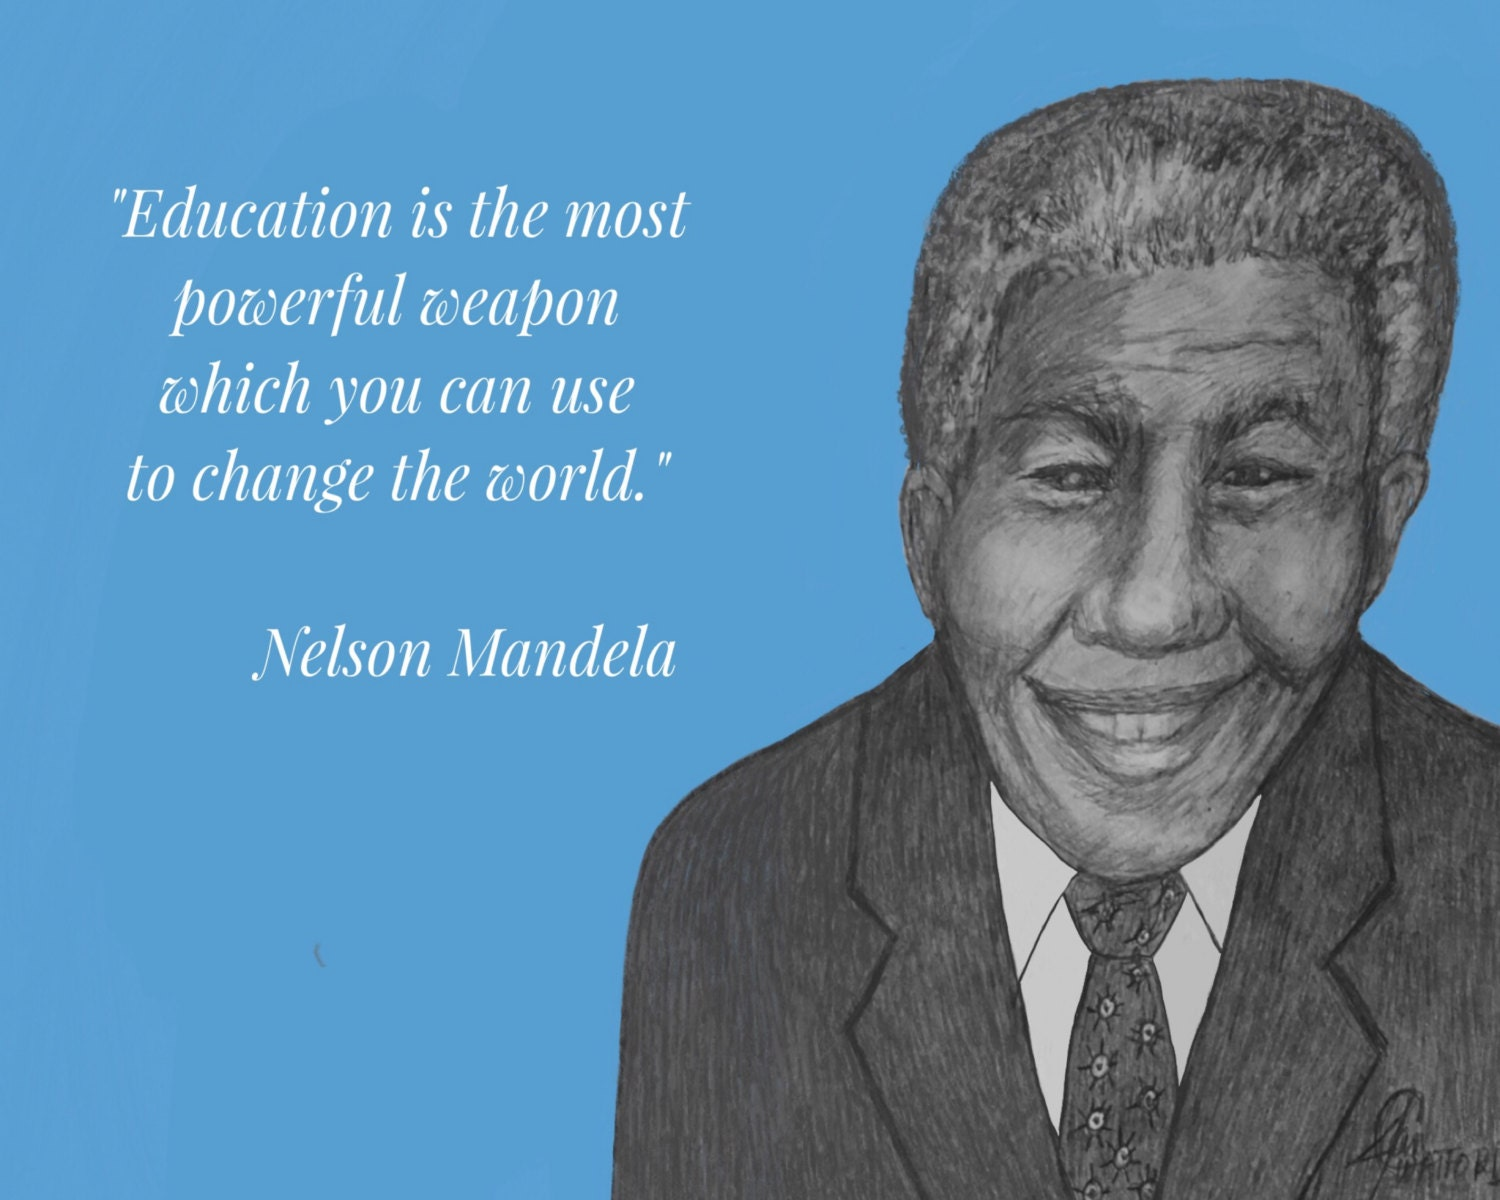 Nelson Mandela Inspirational Quote Education Is The Most Etsy